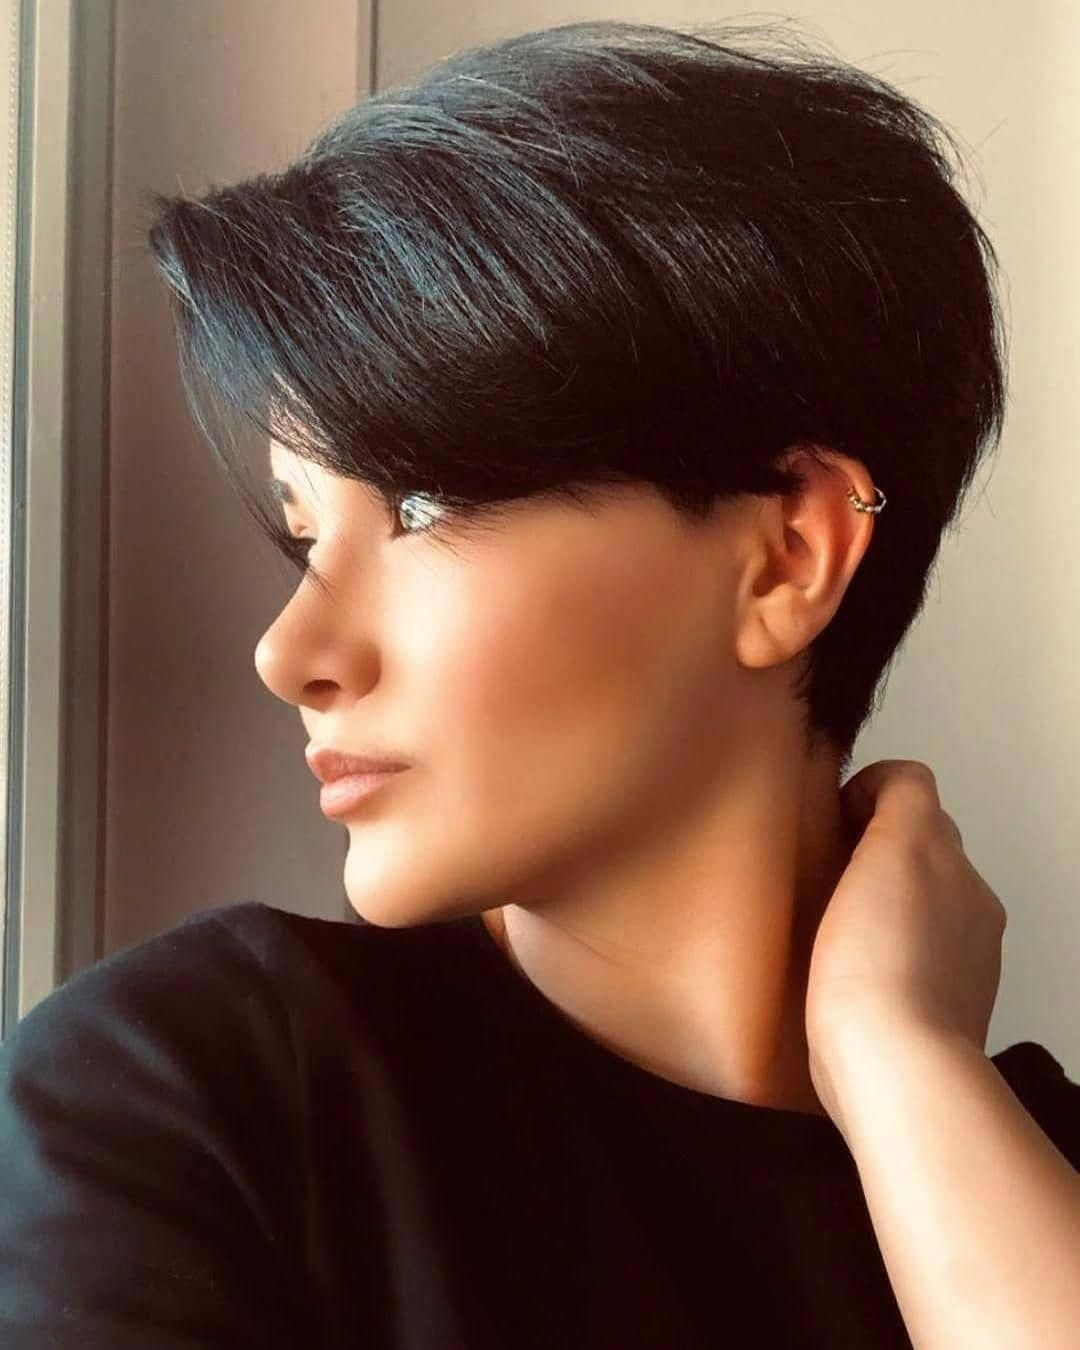 60 Of The Most Stunning Short Hairstyles On Instagram March 2019 Shorthairstyles Shorth In 2020 Short Hair Styles Thick Hair Styles Short Hairstyles For Thick Hair